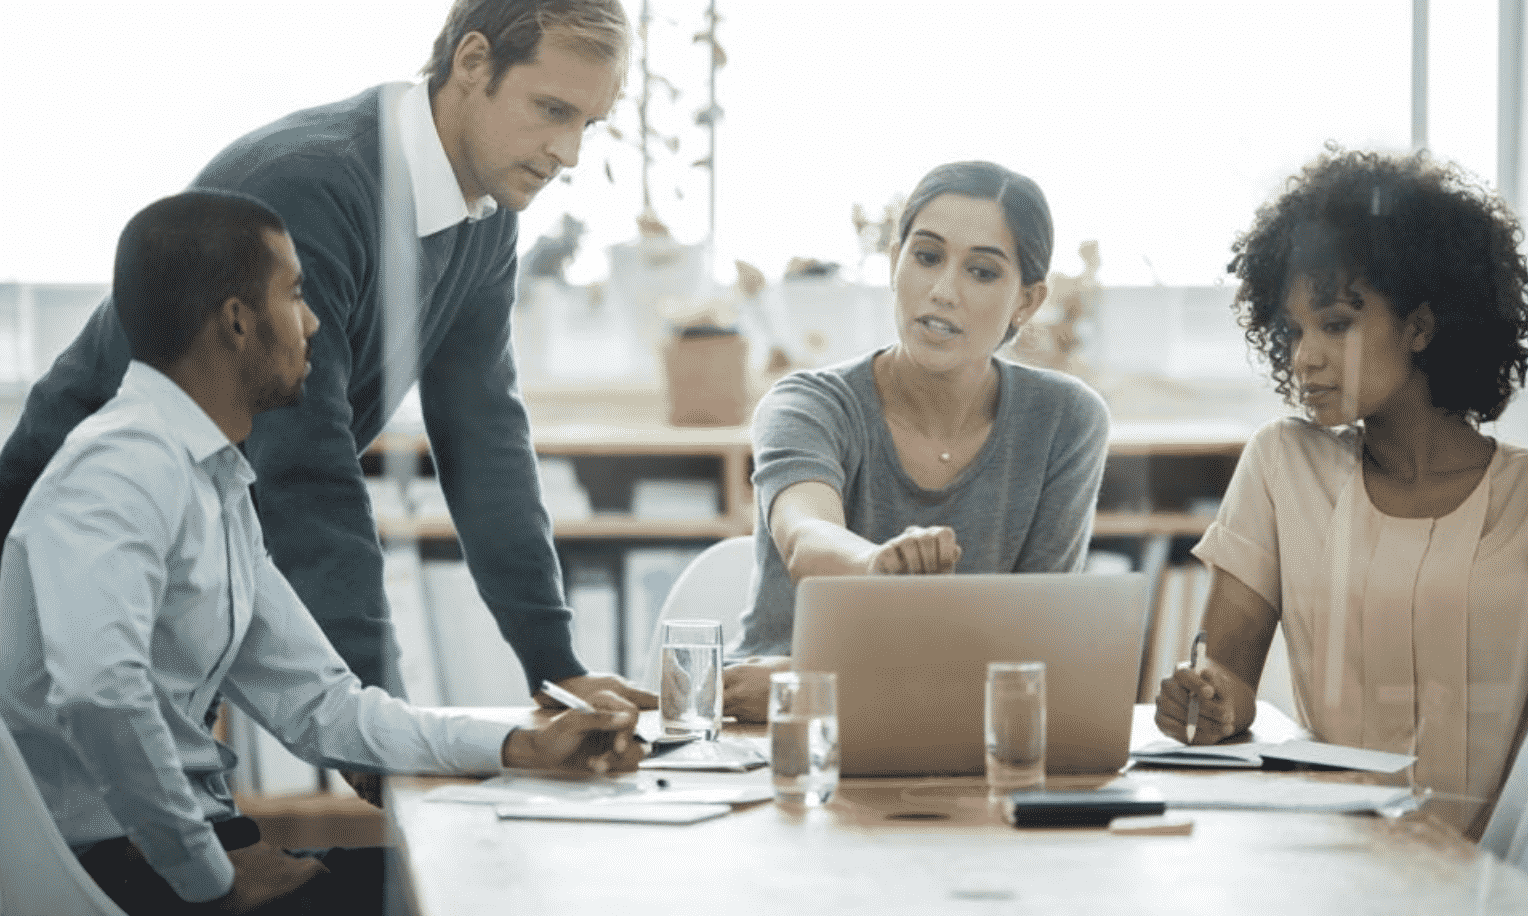 4 AI tools that are changing business communication